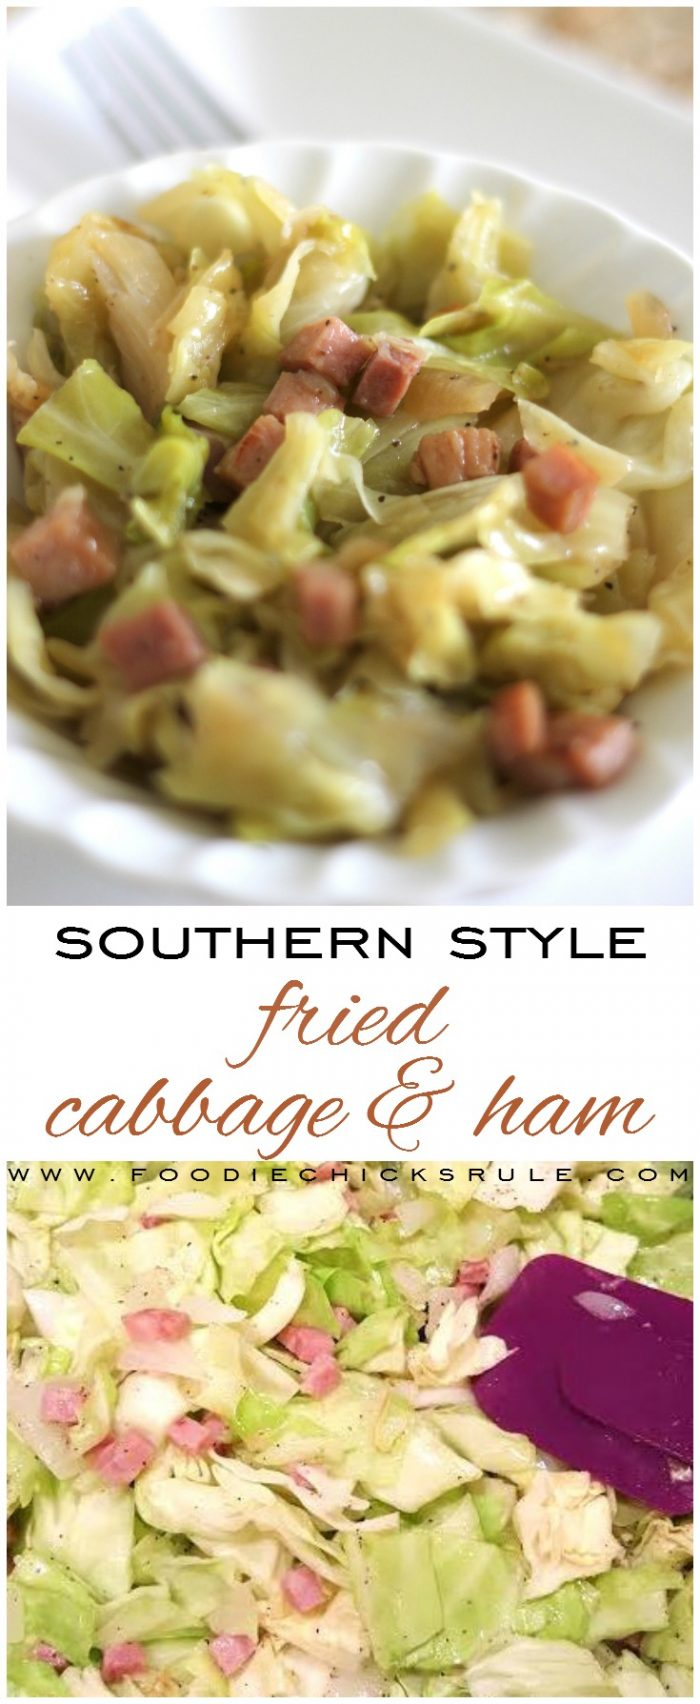 Southern Style Fried Cabbage & Ham, so good!! (and easy!!) foodiechicksrule.com #friedcabbageandham #cabbageandham #southernfood